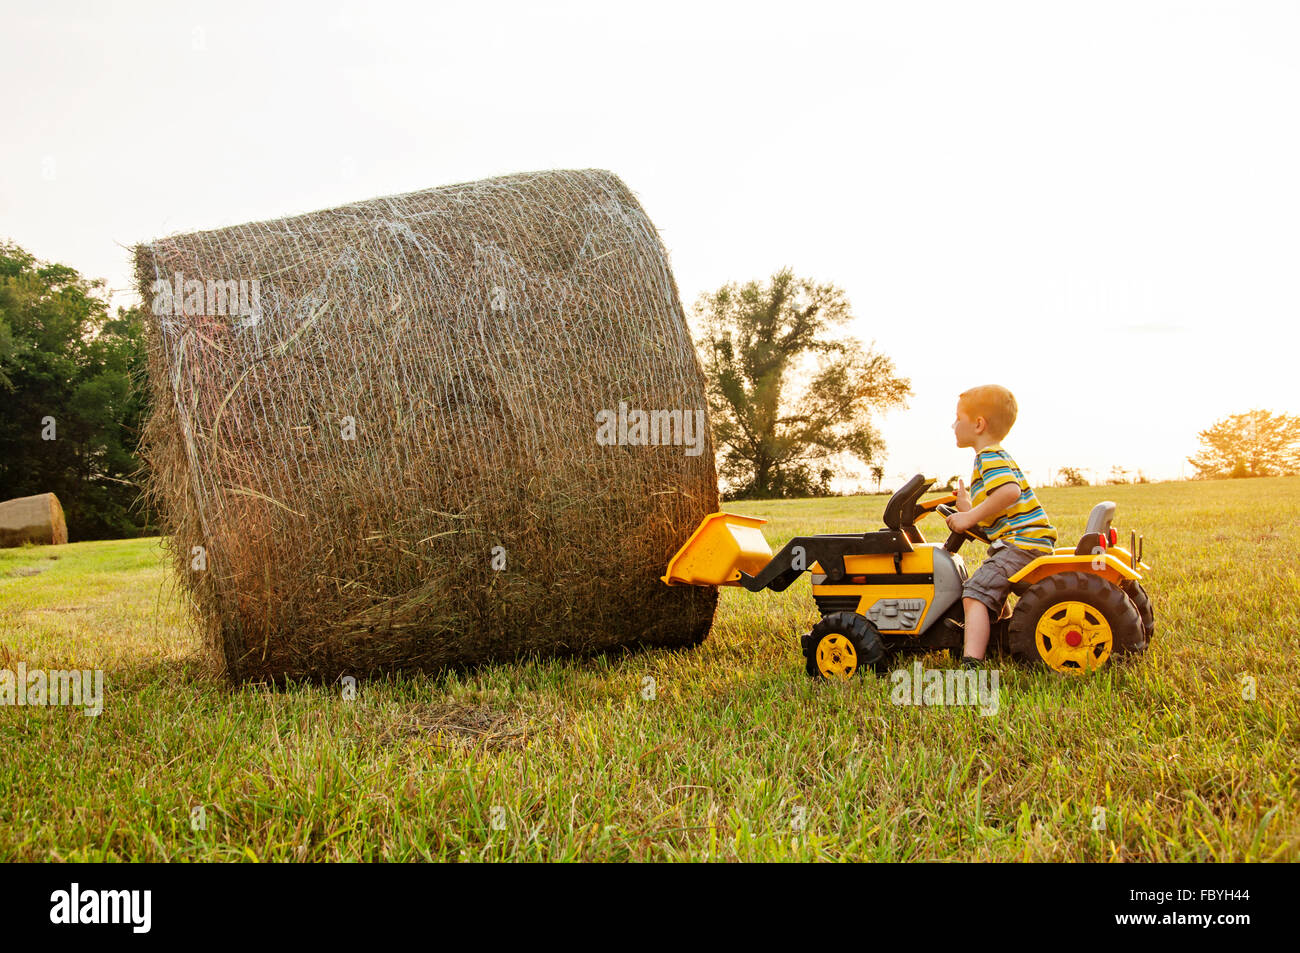 child using bucket on toy tractor to lift bale of hay - Stock Image